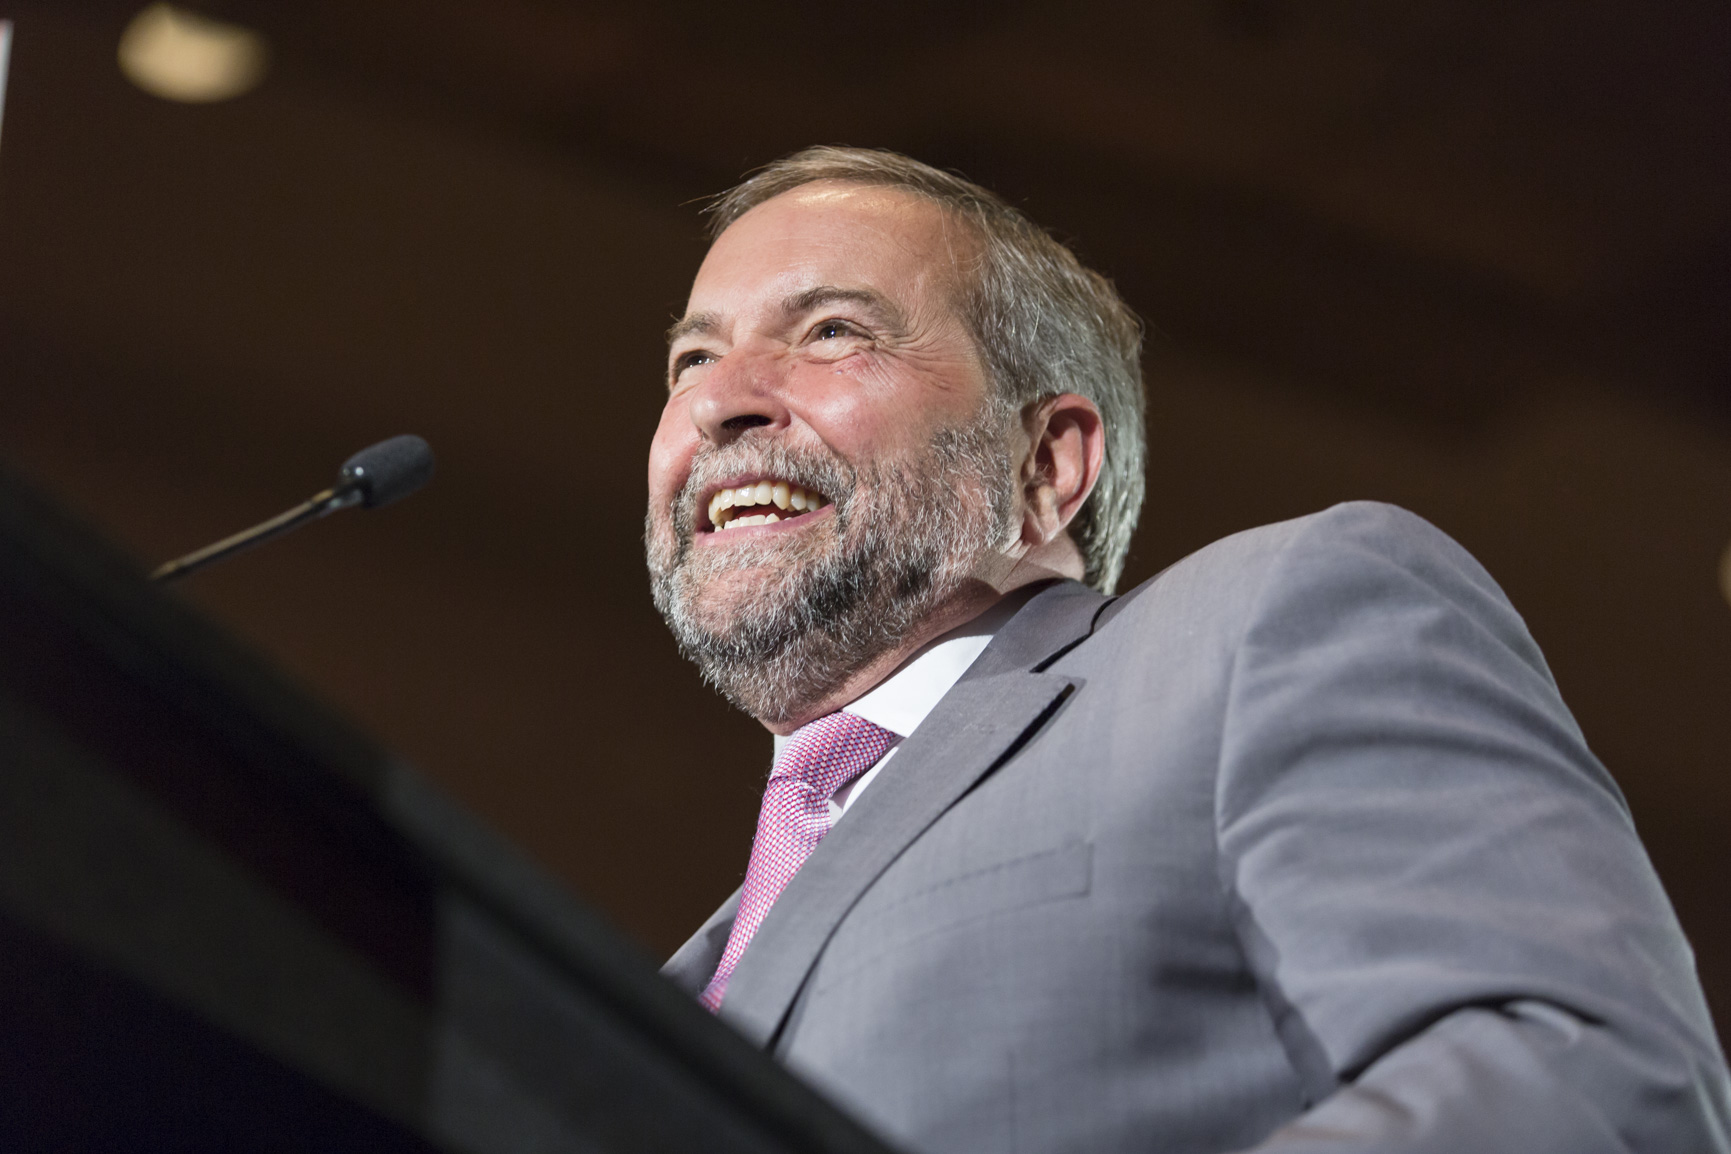 NDP Leader Tom Mulcair would end the military commitment to combat ISIS in Iraq if elected. (Flickr)